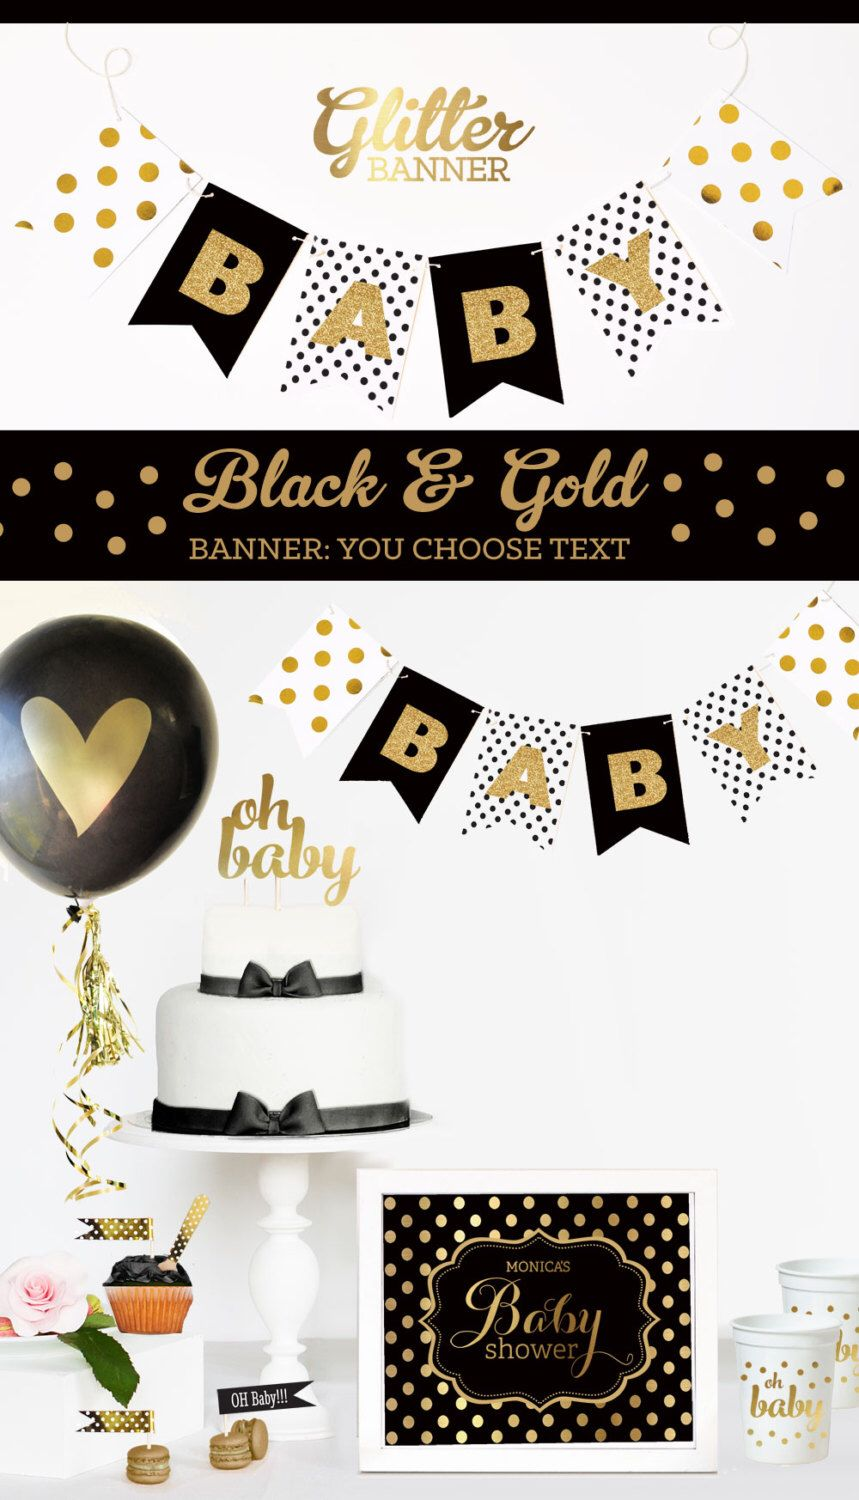 Pin By Mk Kaishian On Baby Shower Elegant Baby Shower White